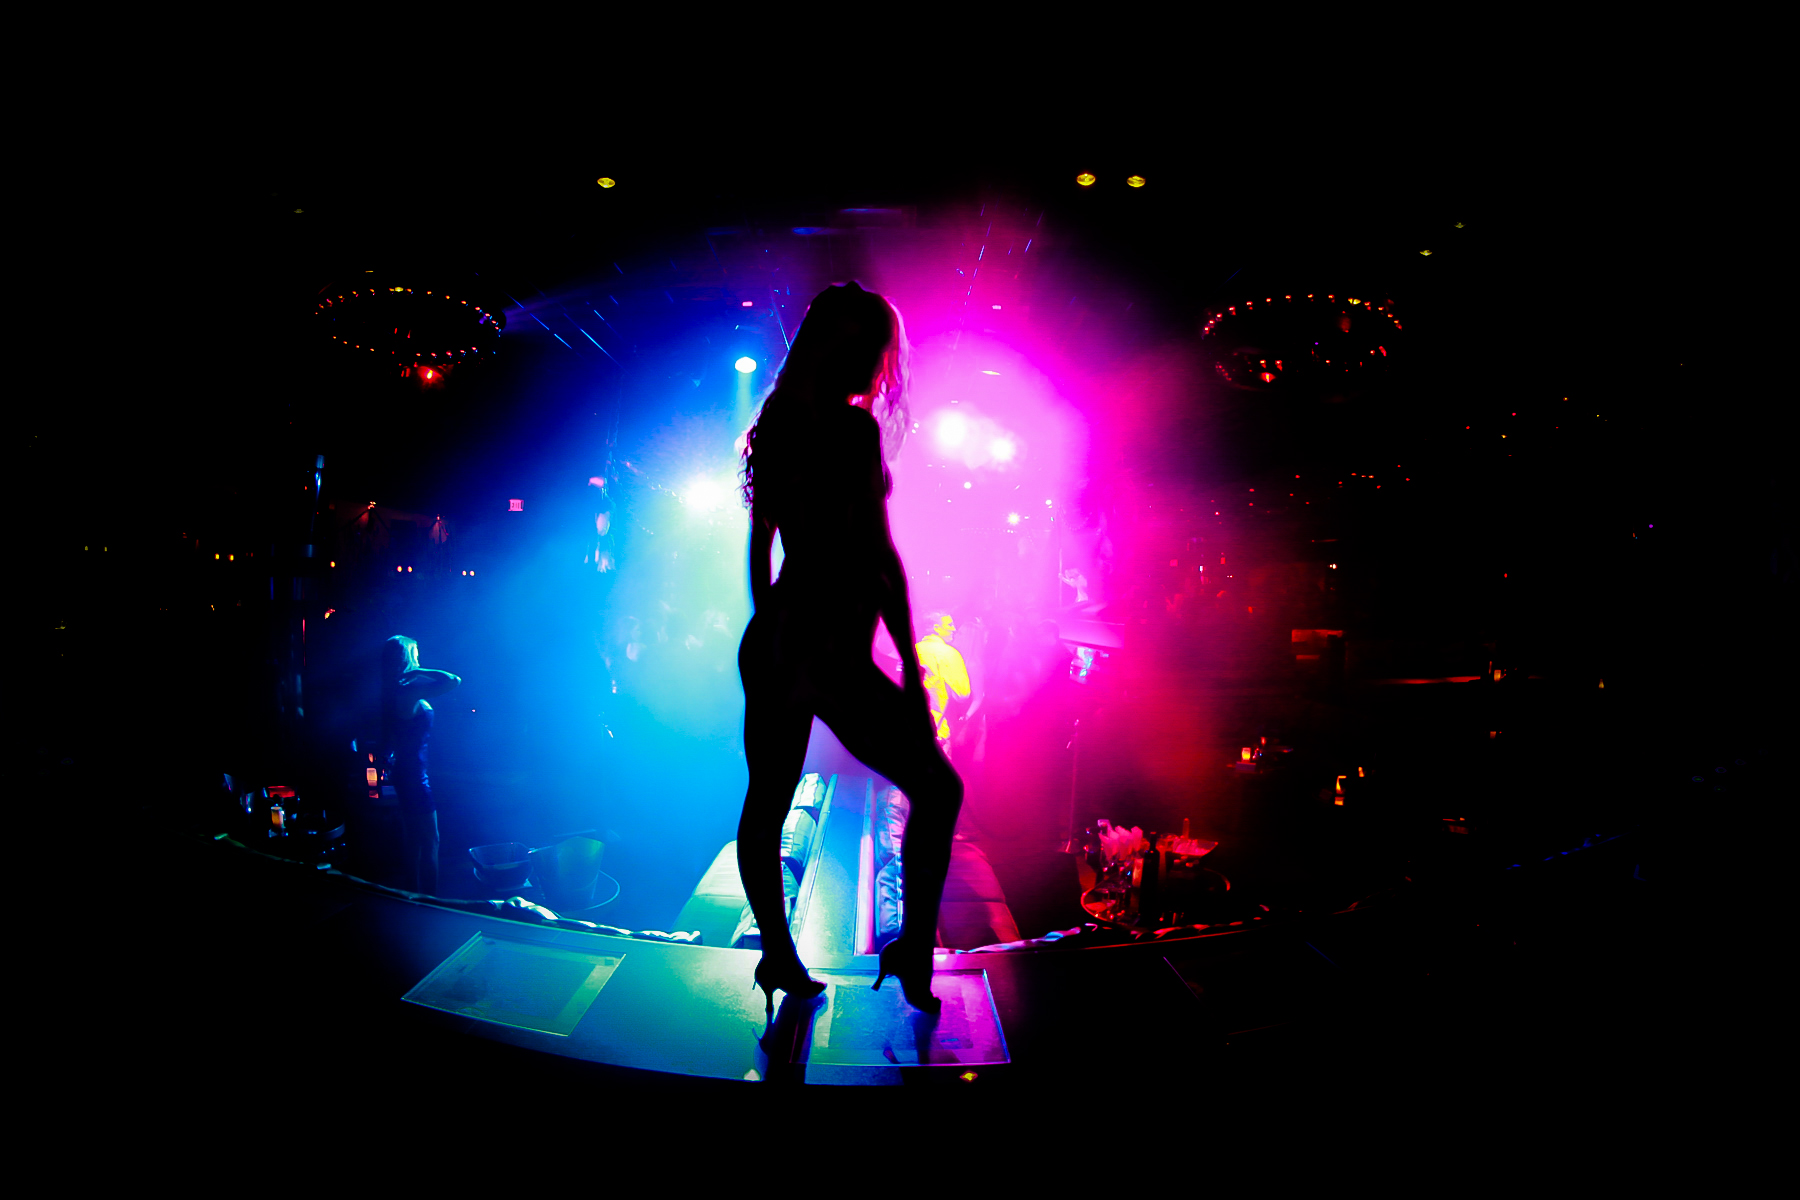 Nightlife and Event Photography by RockBear